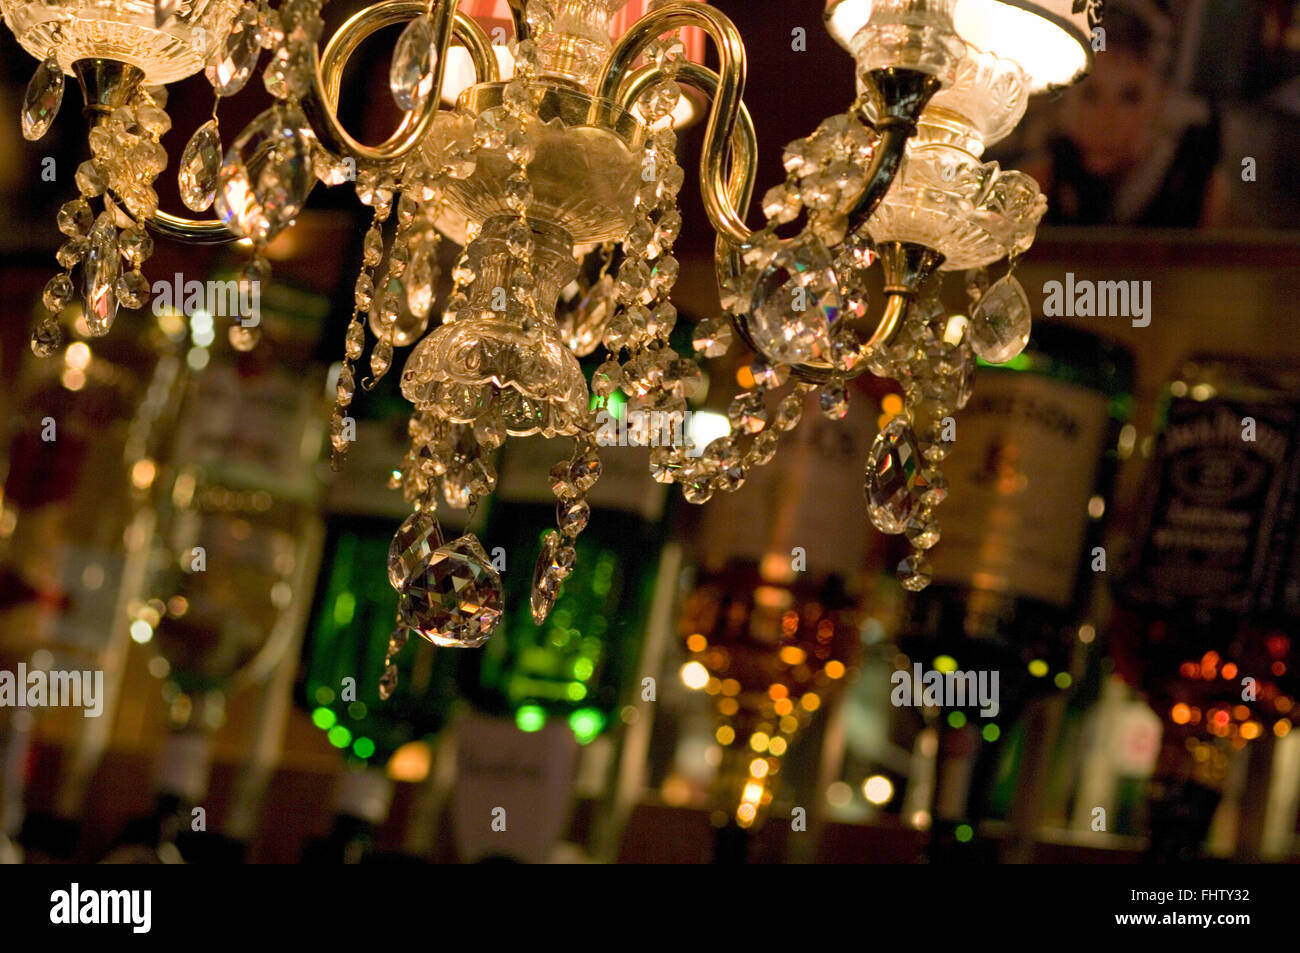 Chandelier, crystals, lampshades and lamp sparkling in a pub with ...